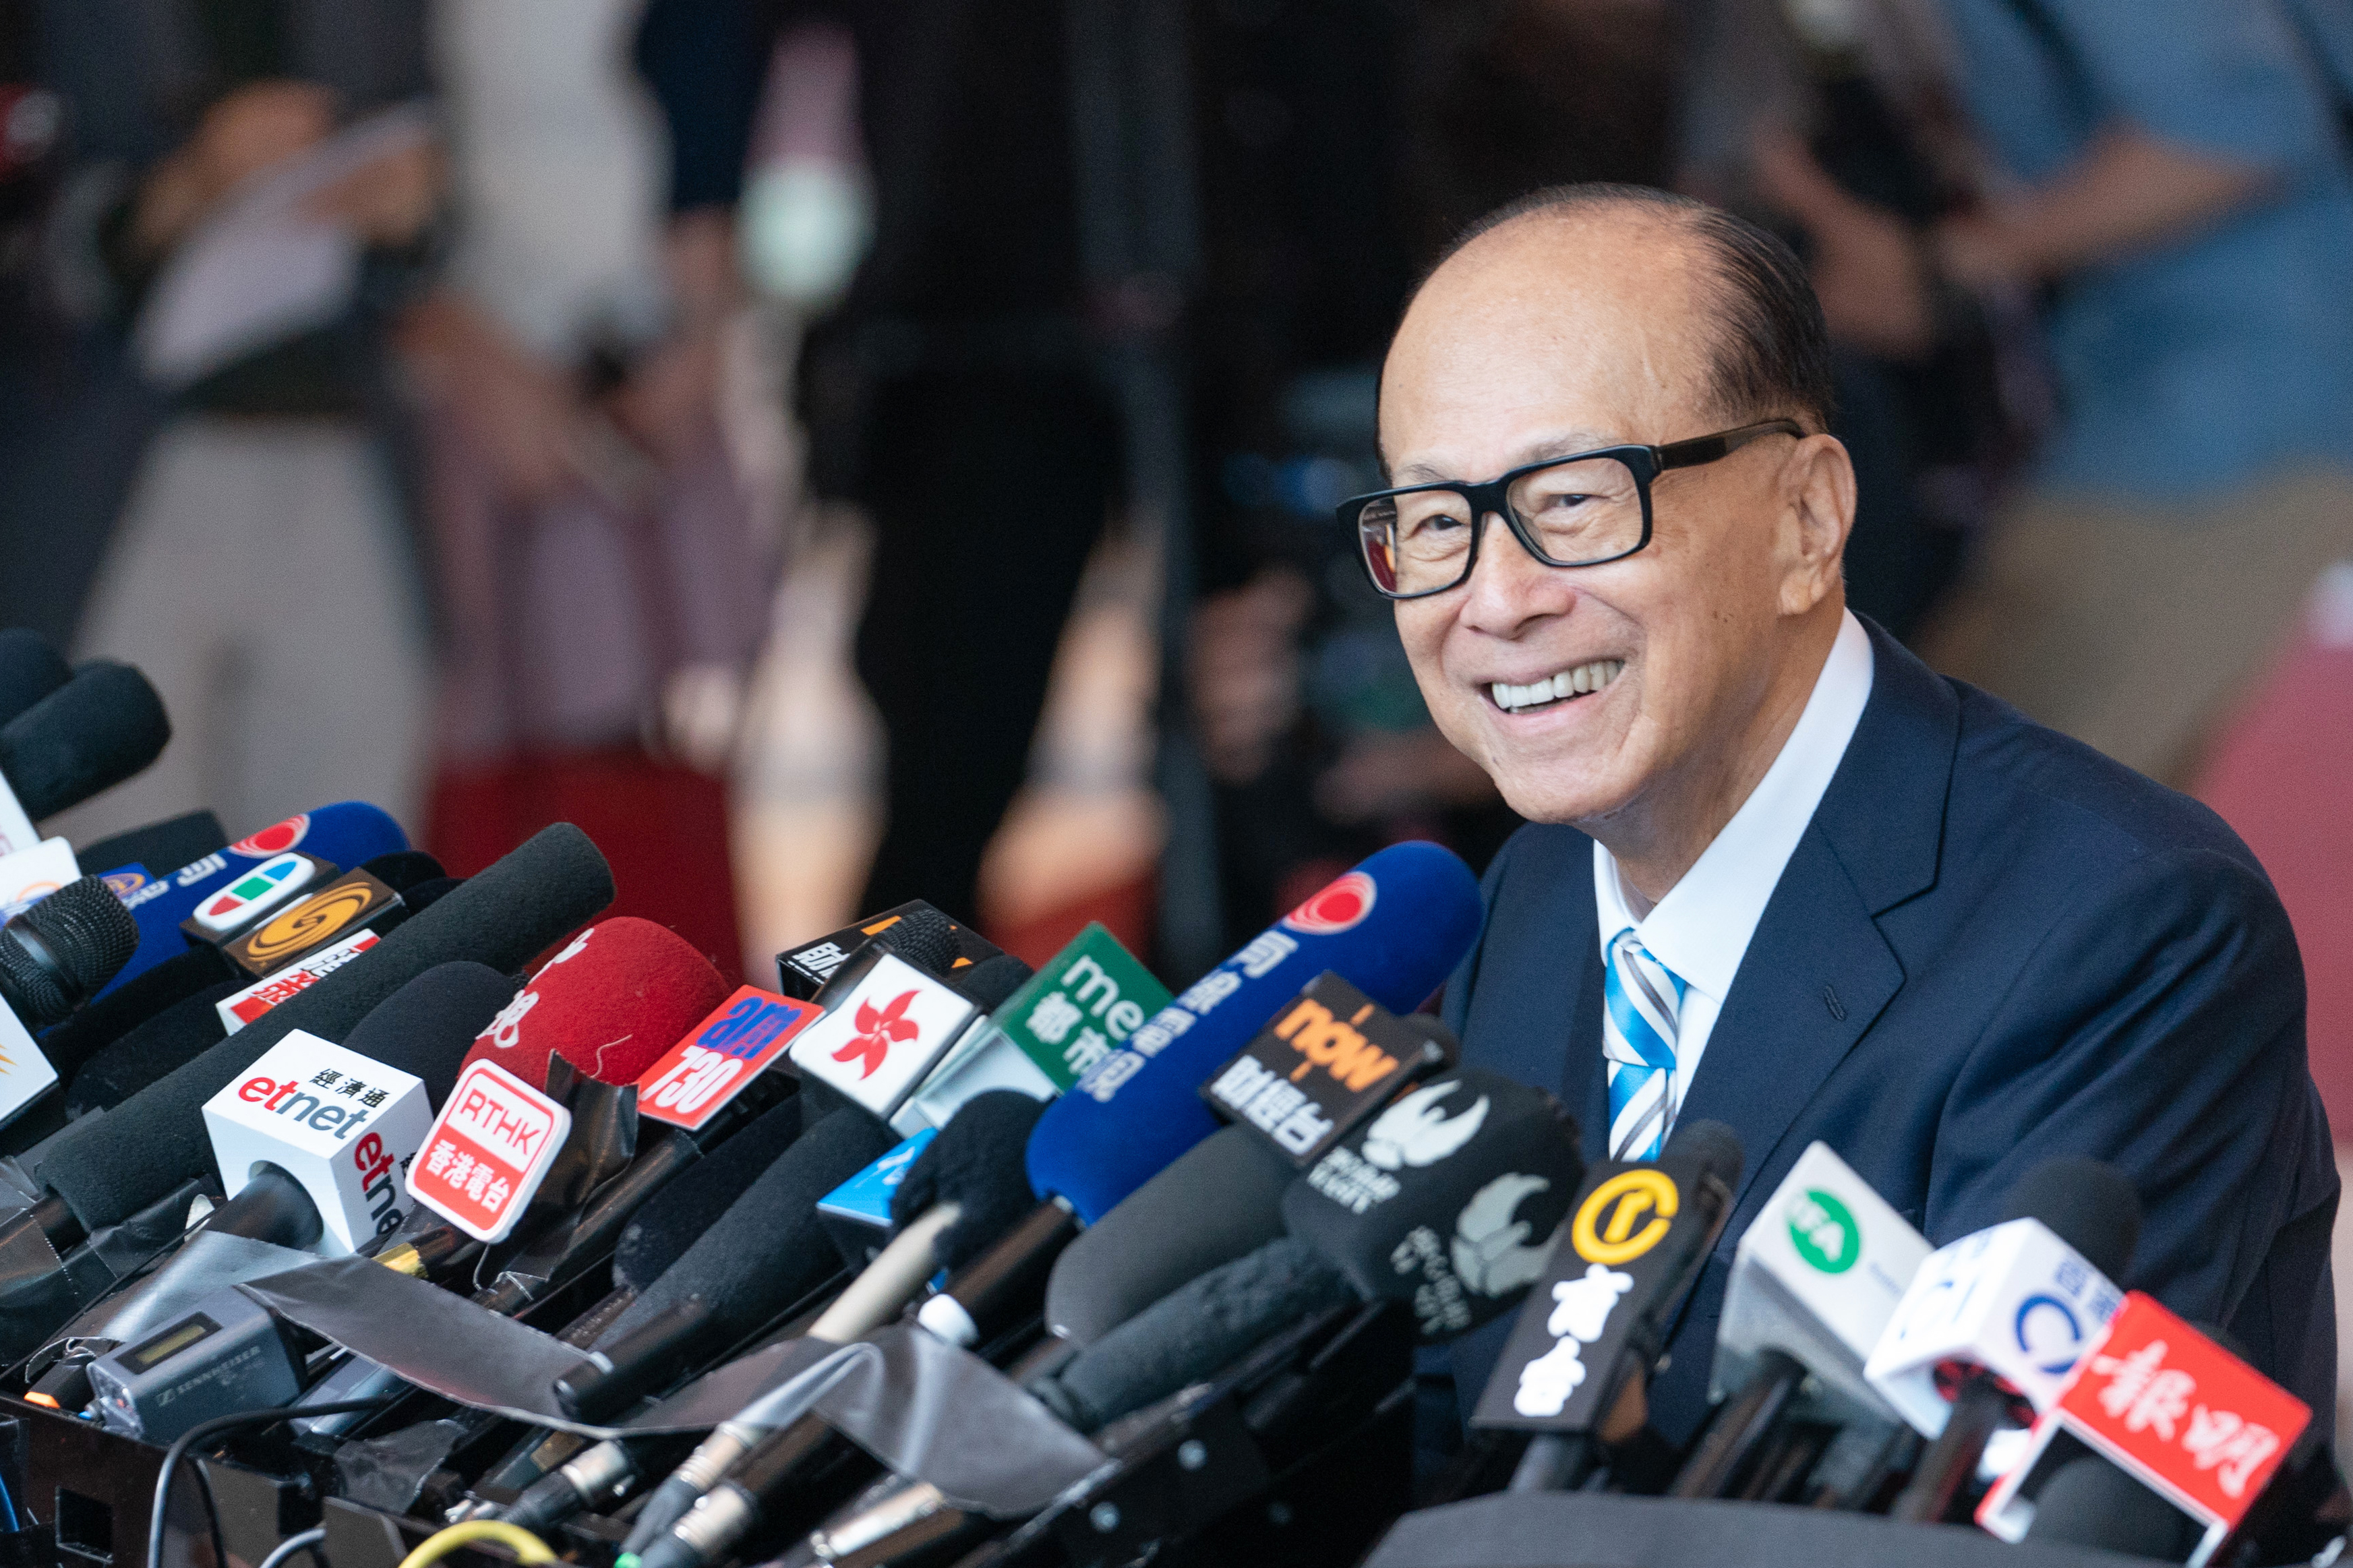 Billionaire Li Ka-shing Appears For Last CK Hutchison Holdings Ltd. Annual General Meeting As Chairman